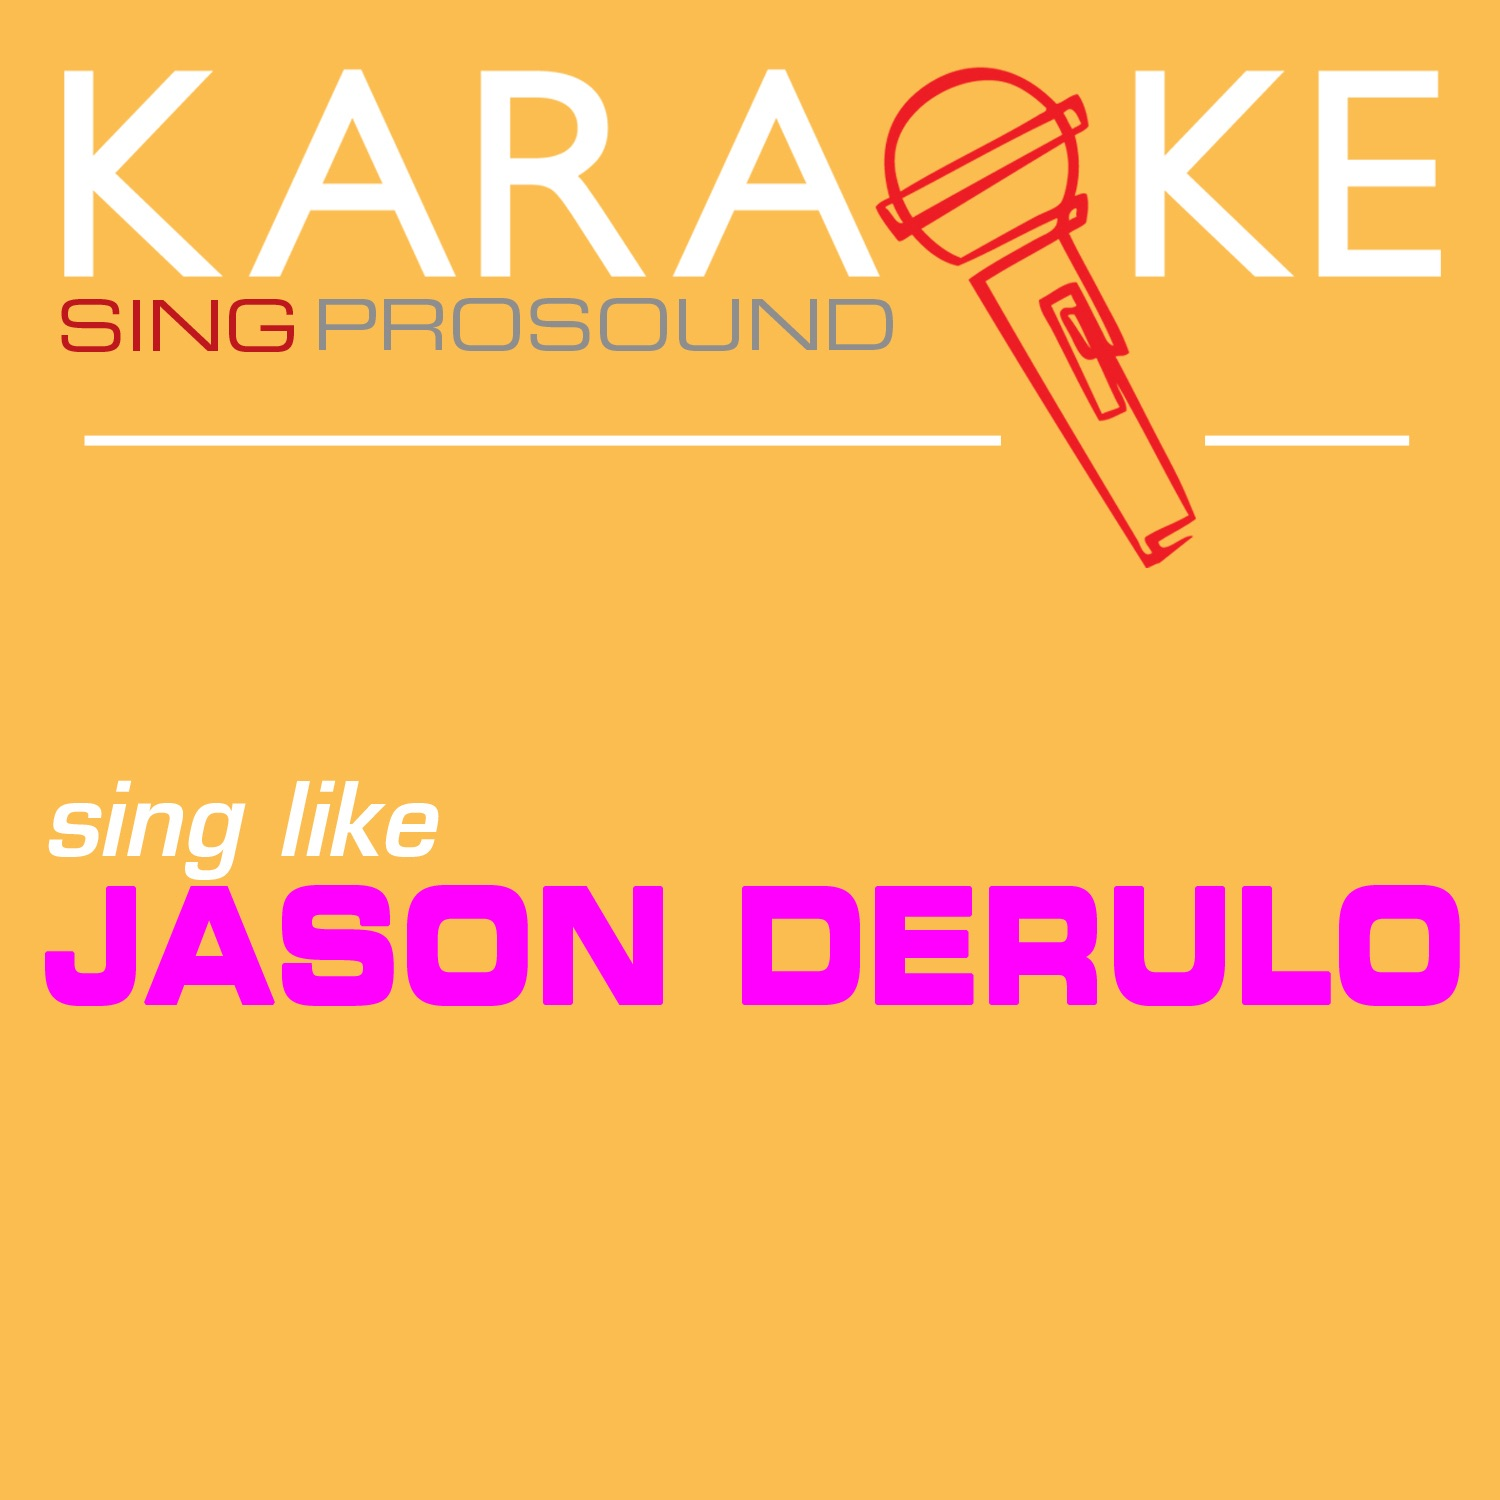 Karaoke in the Style of Jason Derulo - EP